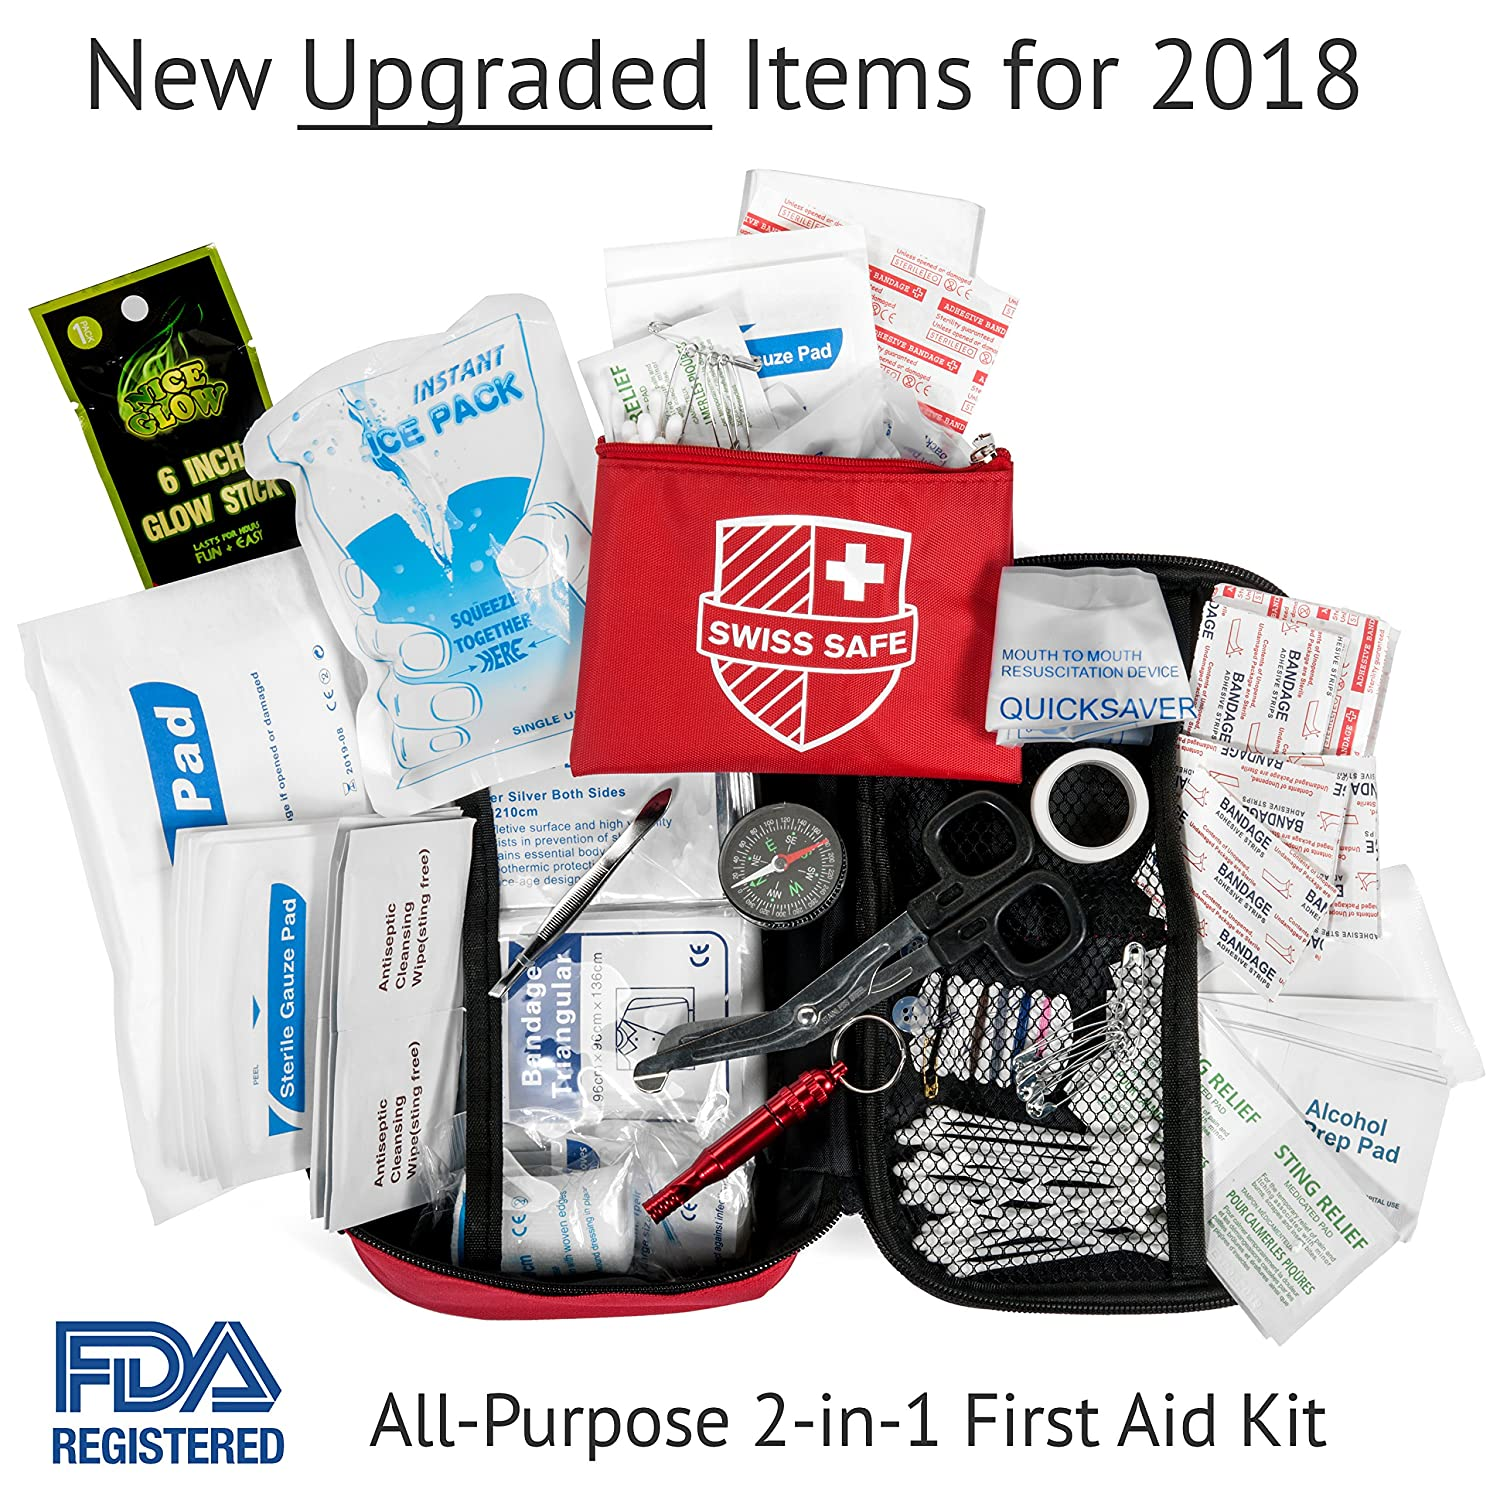 Amazon 2 in 1 first aid kit 120 piece bonus 32 piece amazon 2 in 1 first aid kit 120 piece bonus 32 piece mini first aid kit compact lightweight for emergencies at home outdoors car camping magicingreecefo Image collections